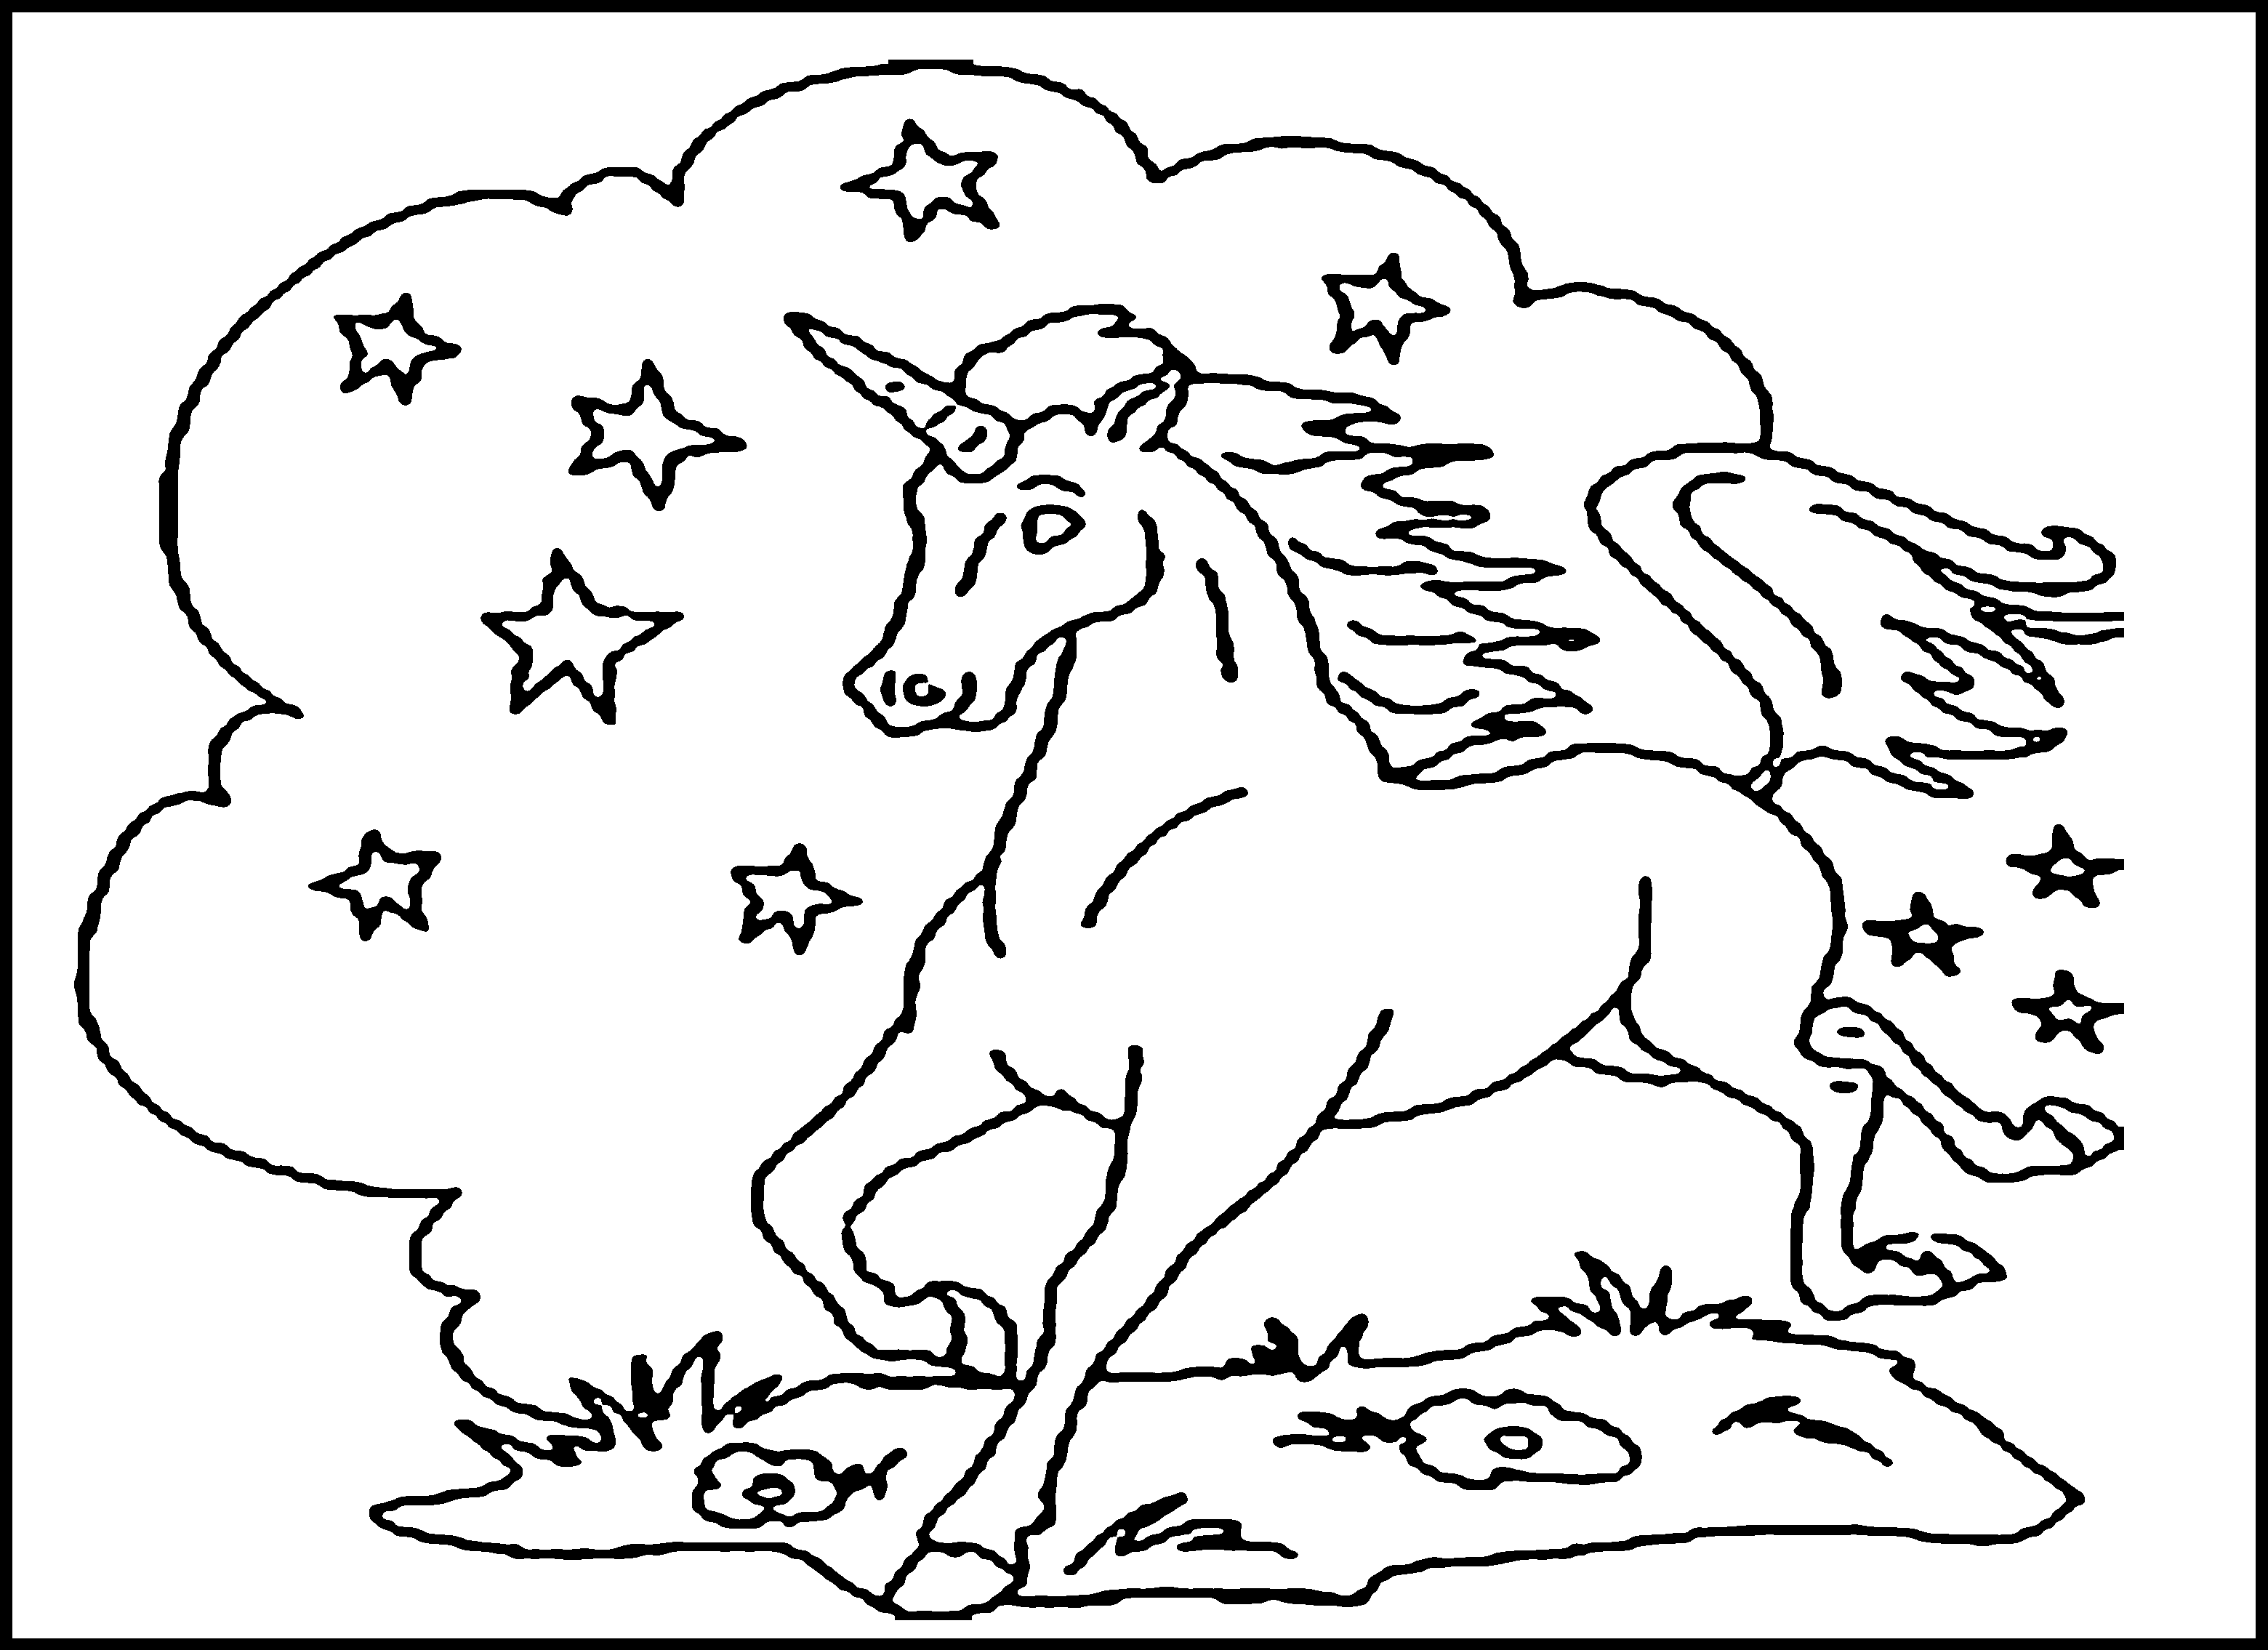 Colouring in pages to print out : Free printable unicorn coloring pages for kids